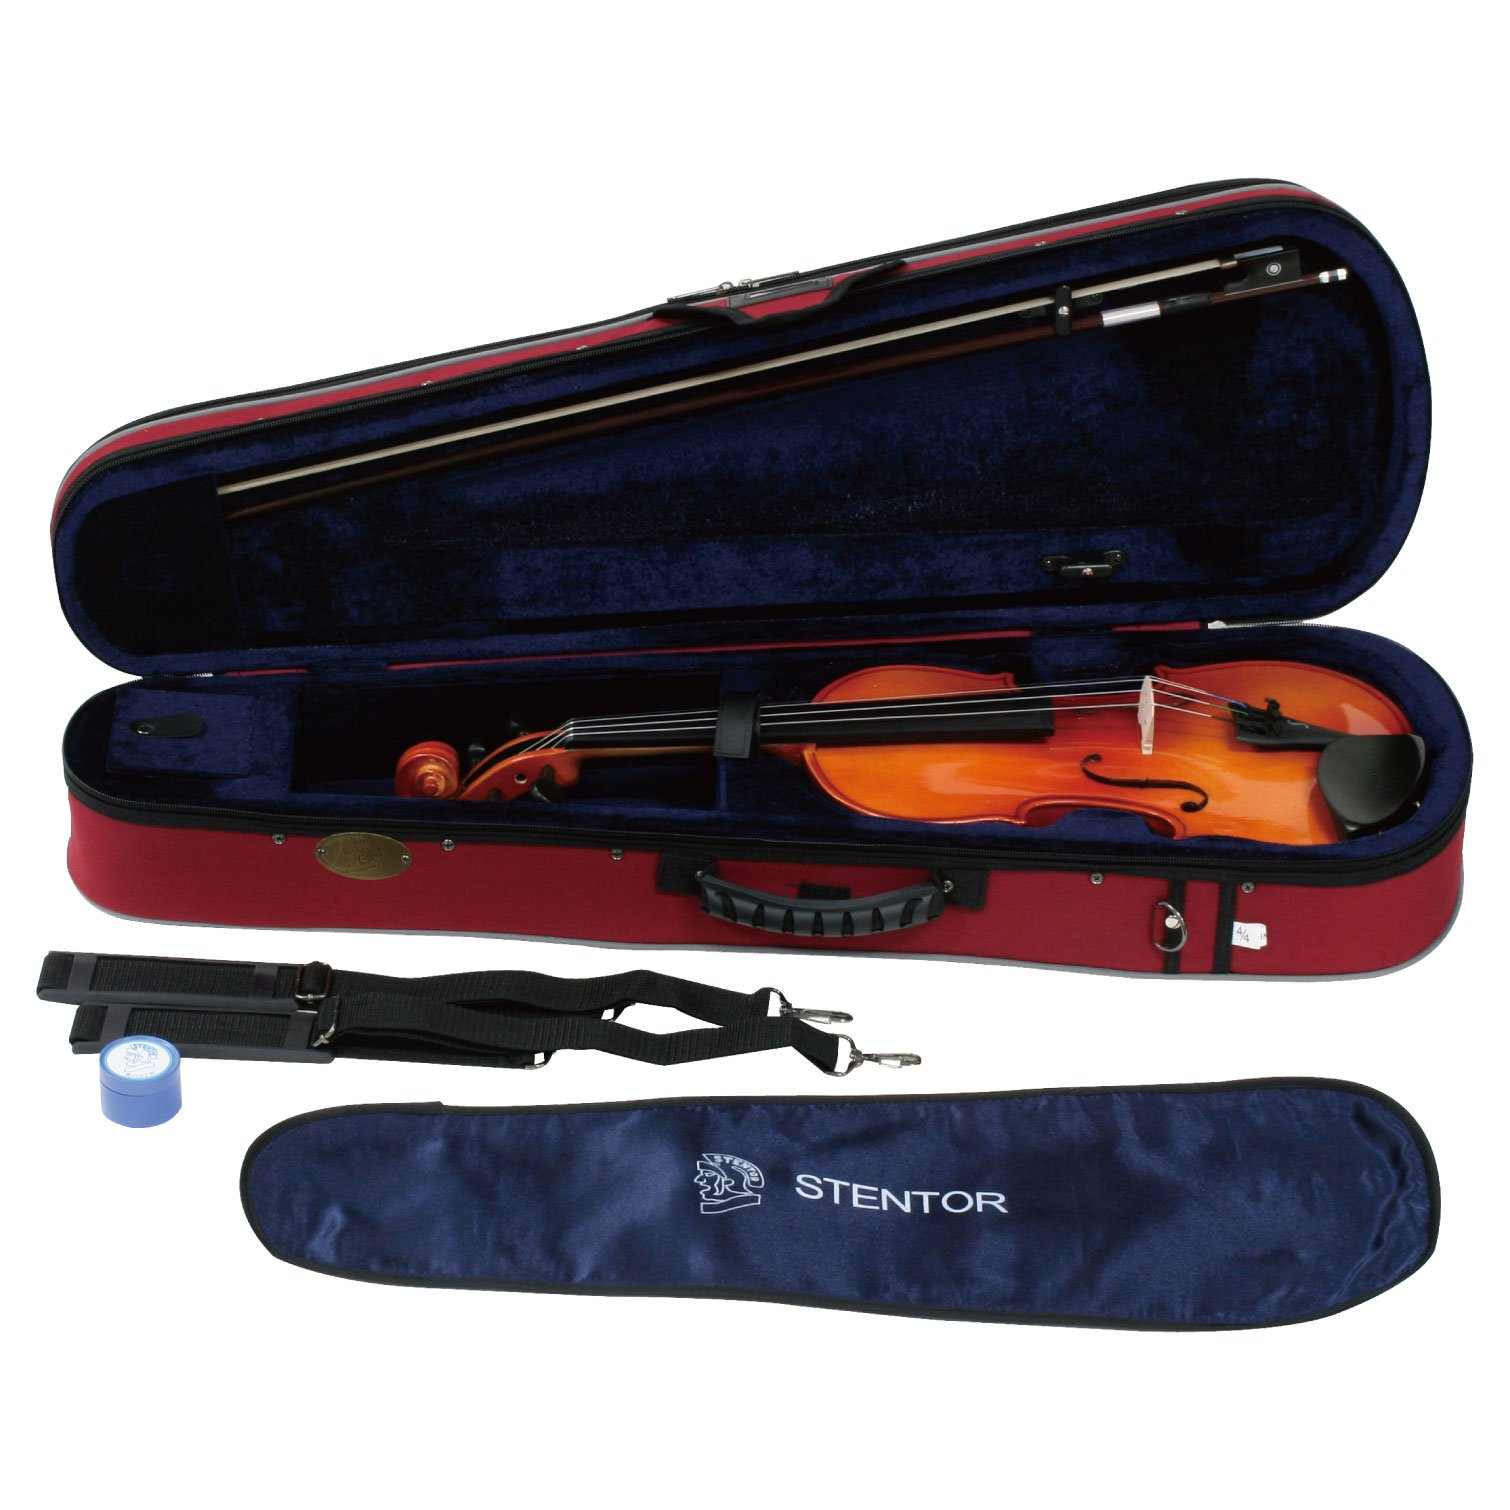 Stentor, 4-String Violin (1500 3/4) by Stentor